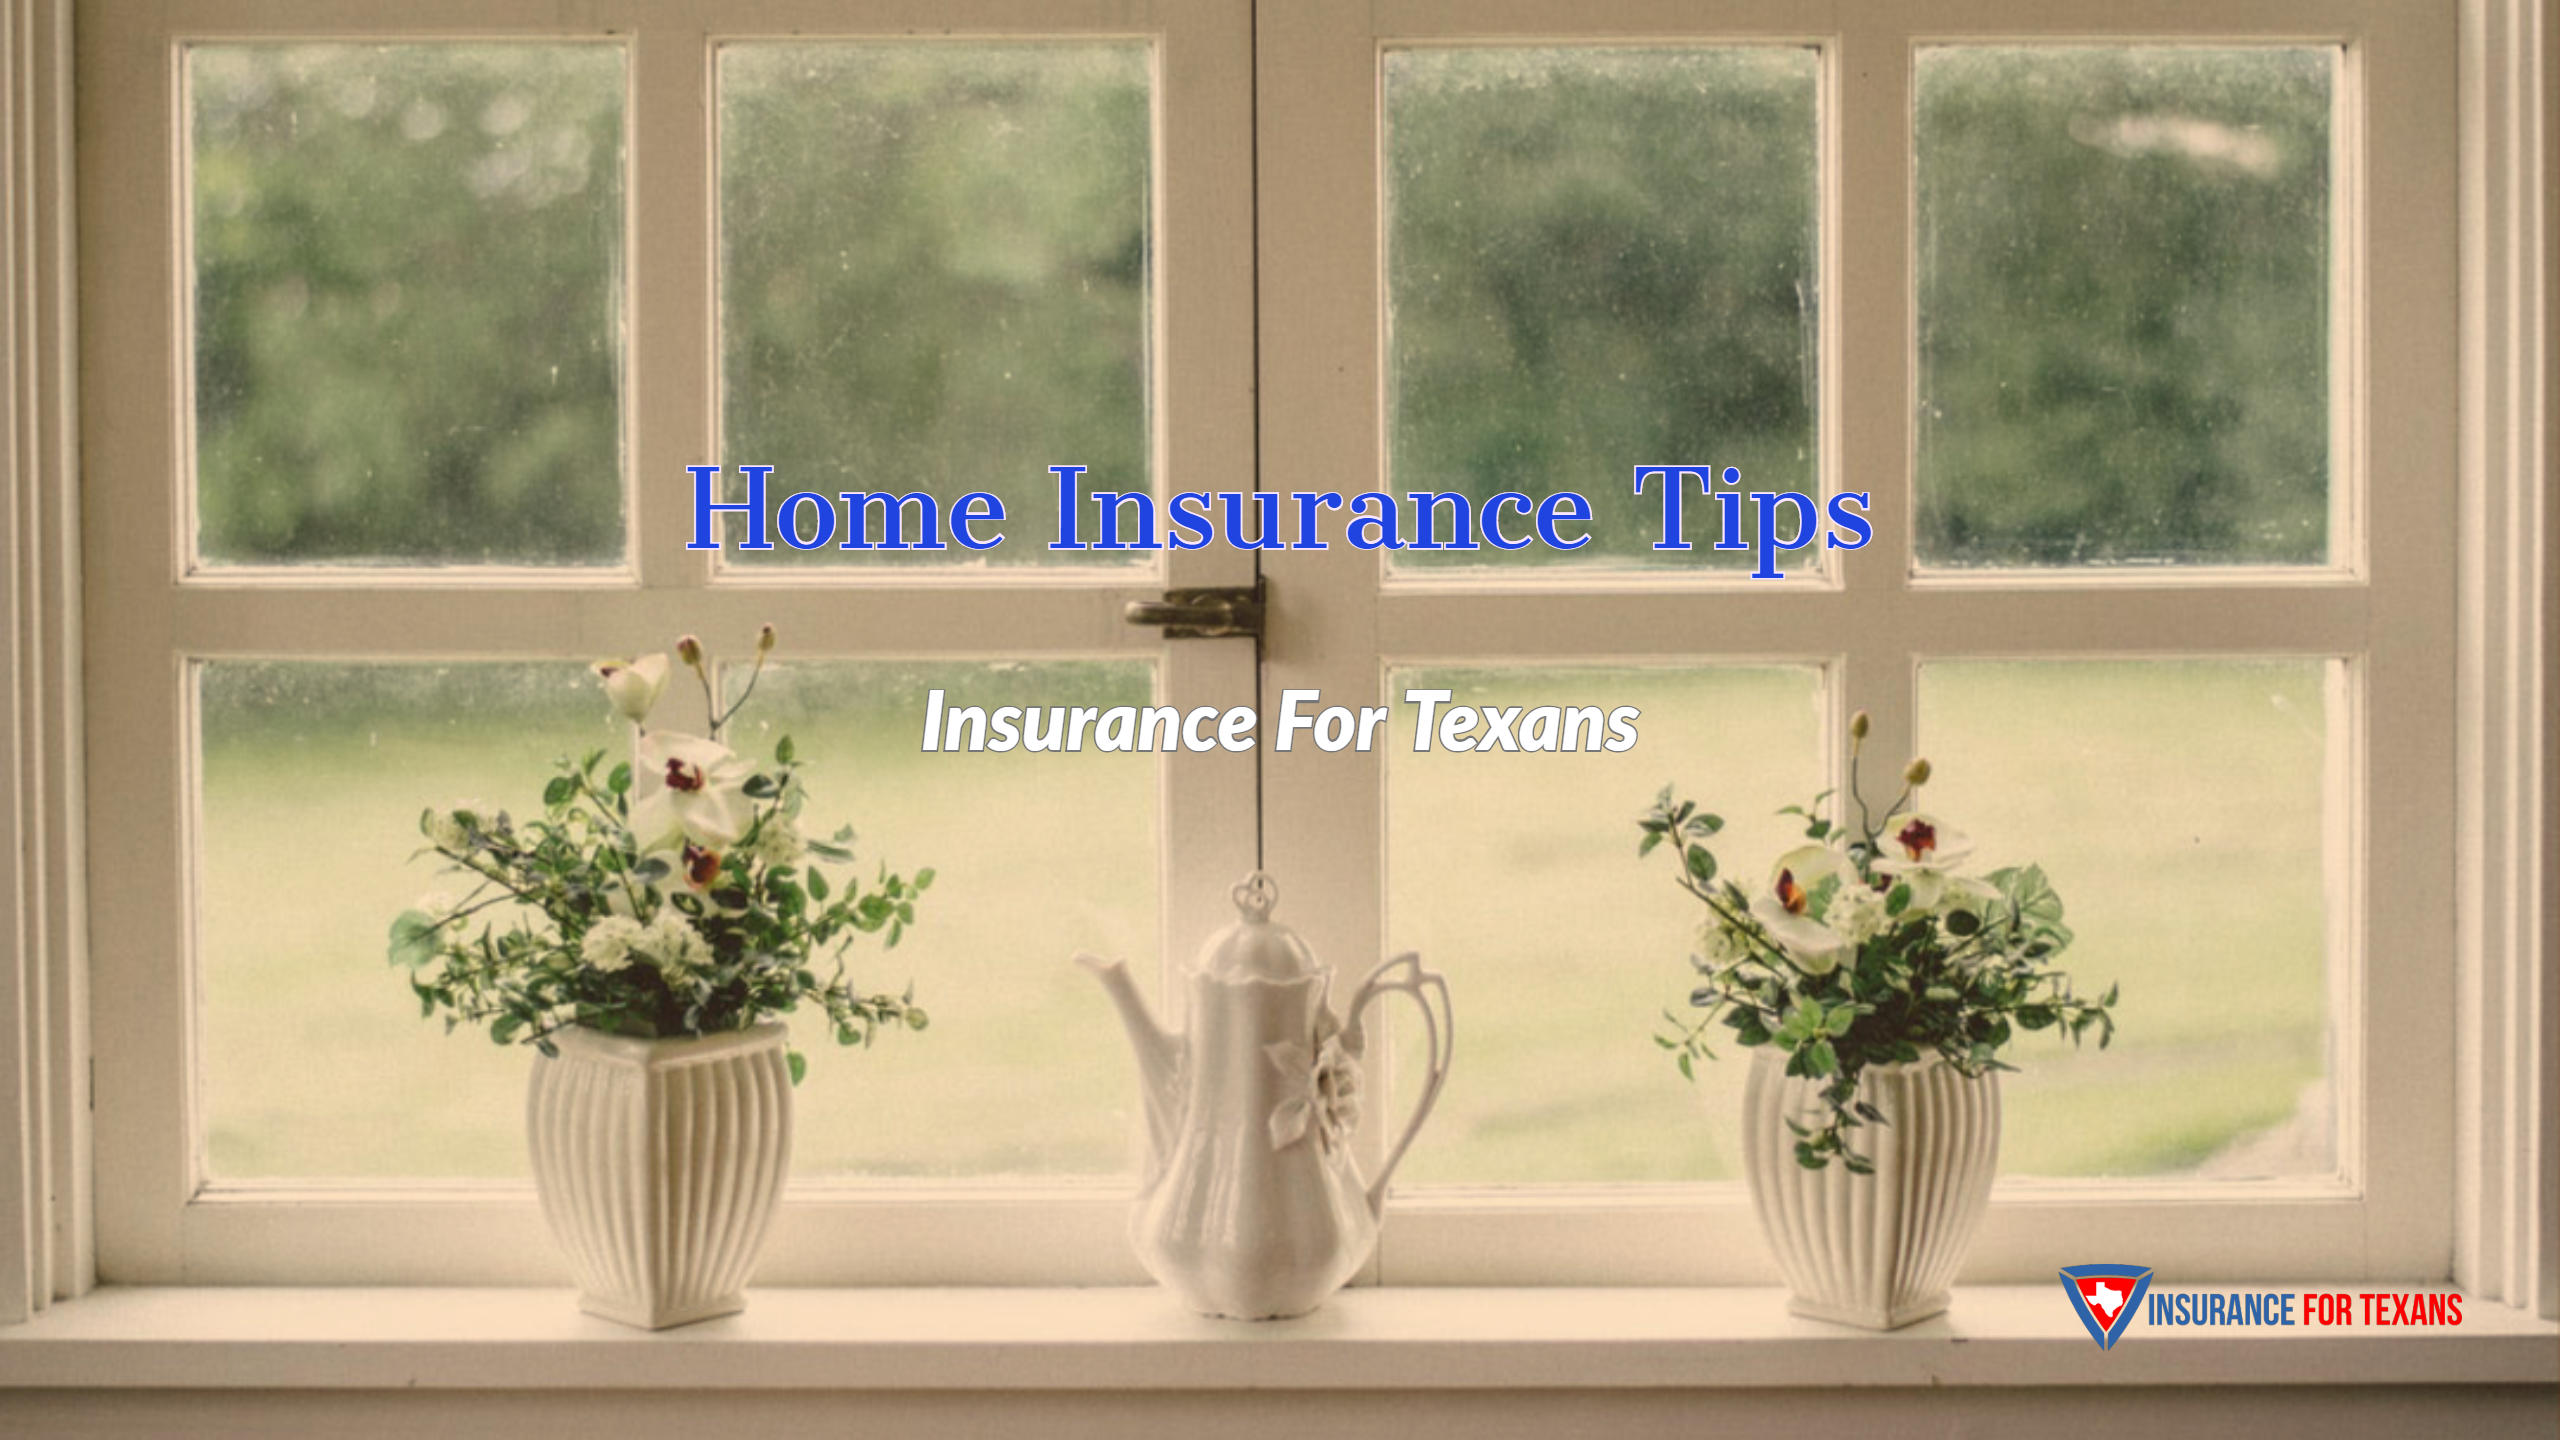 Building Ordinance Does Matter On Texas Home Insurance Policies